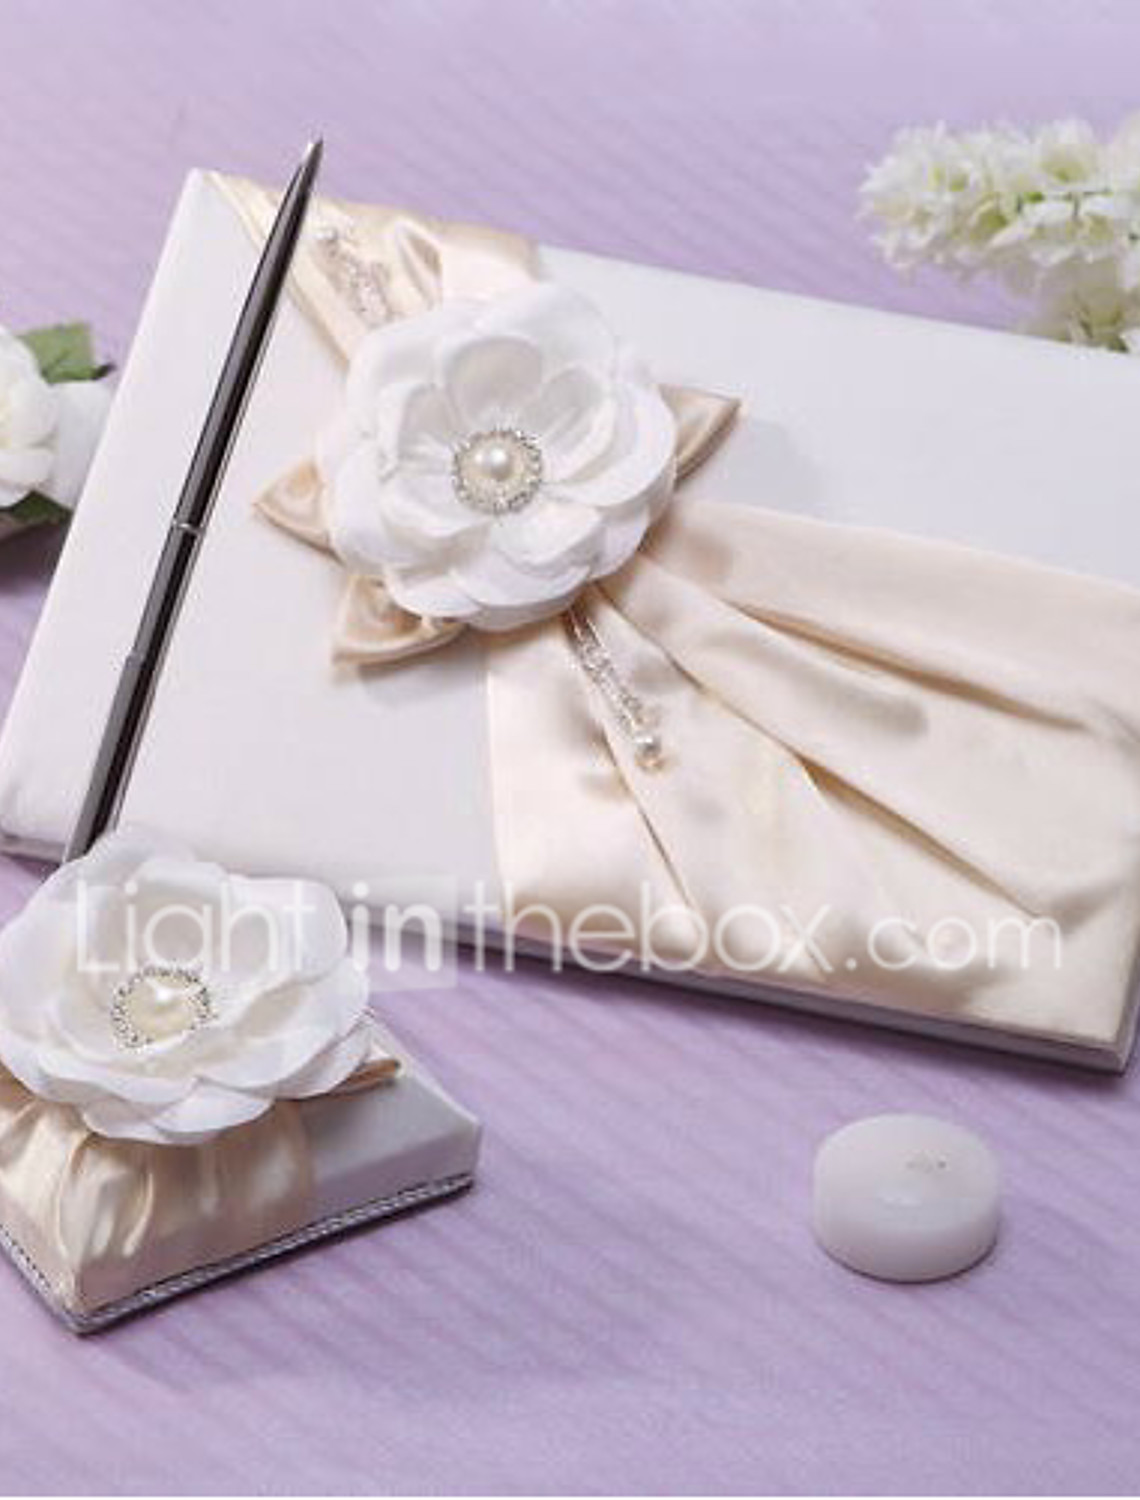 Rhinestone Pearlized Heart Rose Bouquet Wedding Guestbook and Pen Set 20-25405